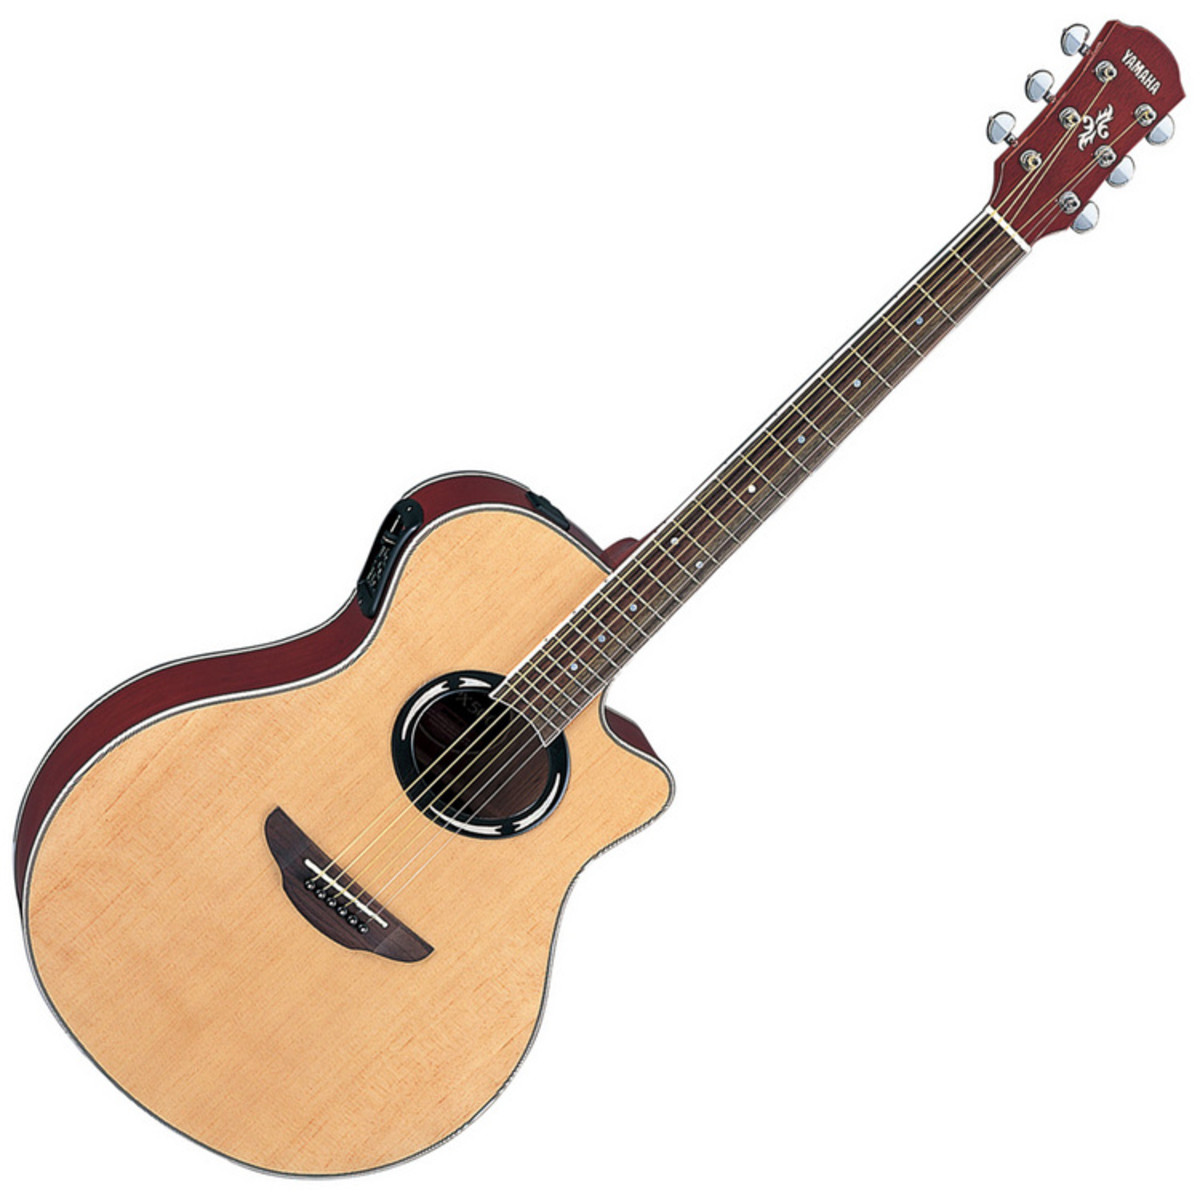 Disc yamaha apx500 electro acoustic guitar natural at for Yamaha apx series